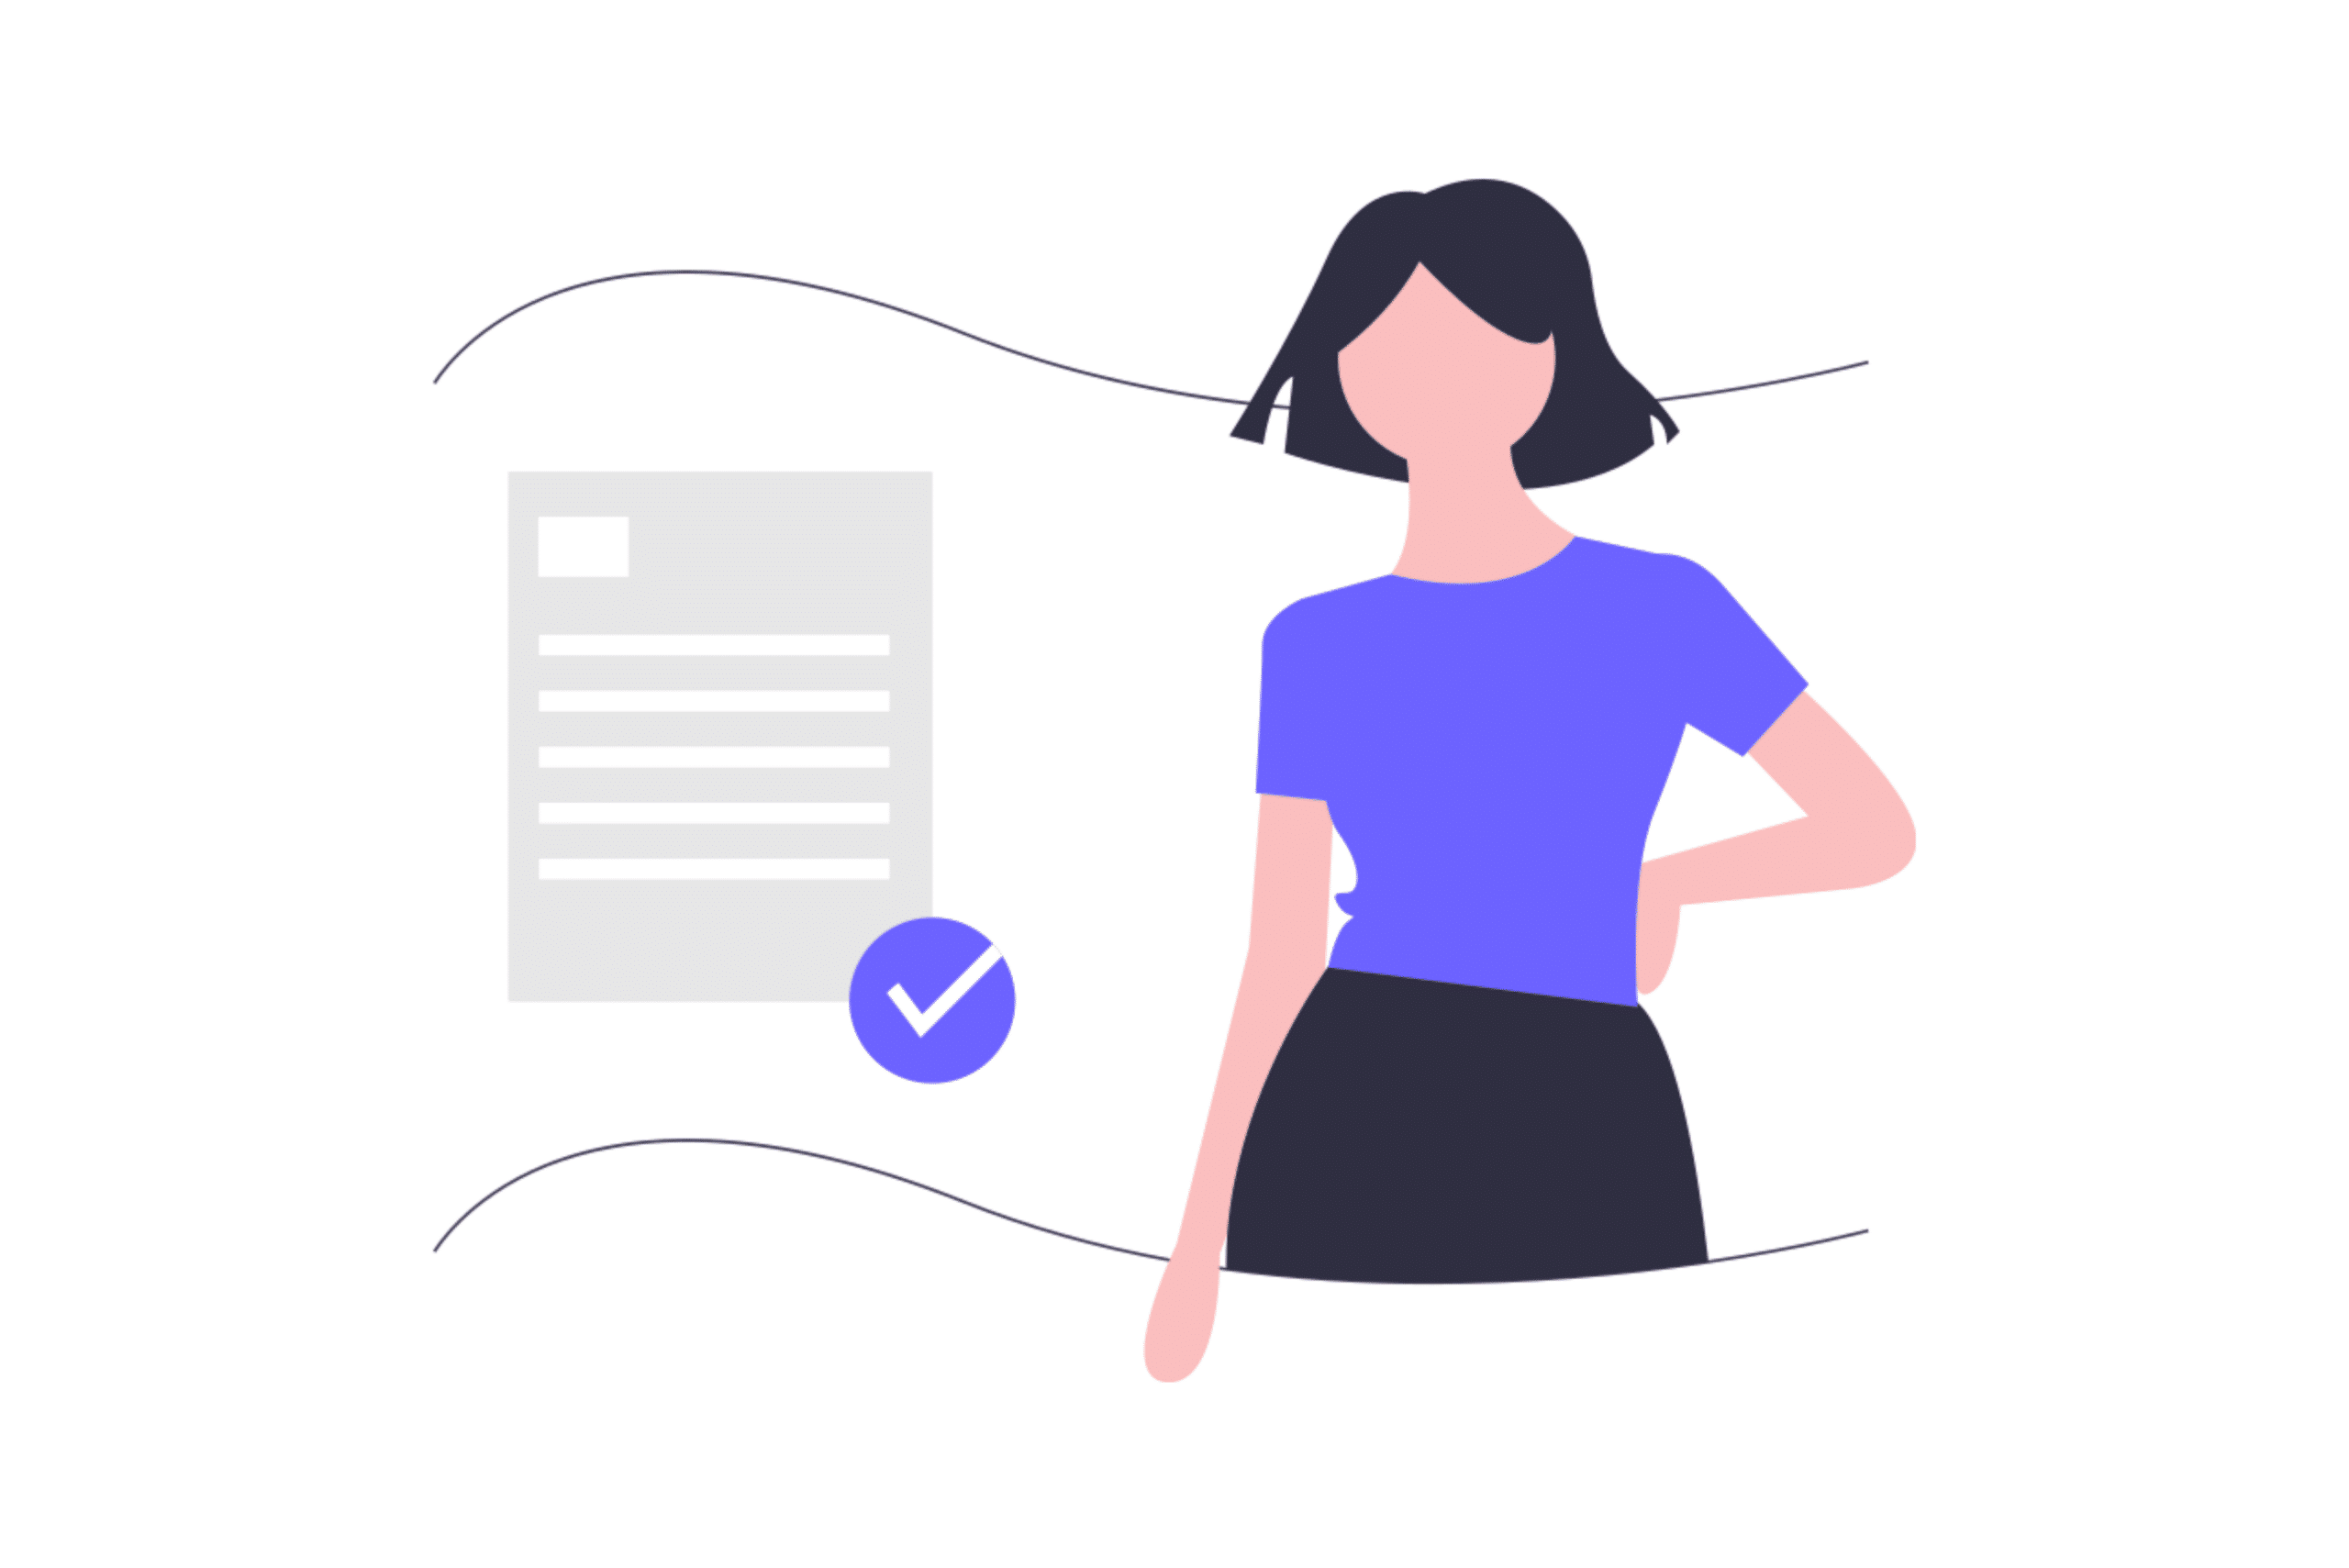 illustration about a woman that have her tax forms in order